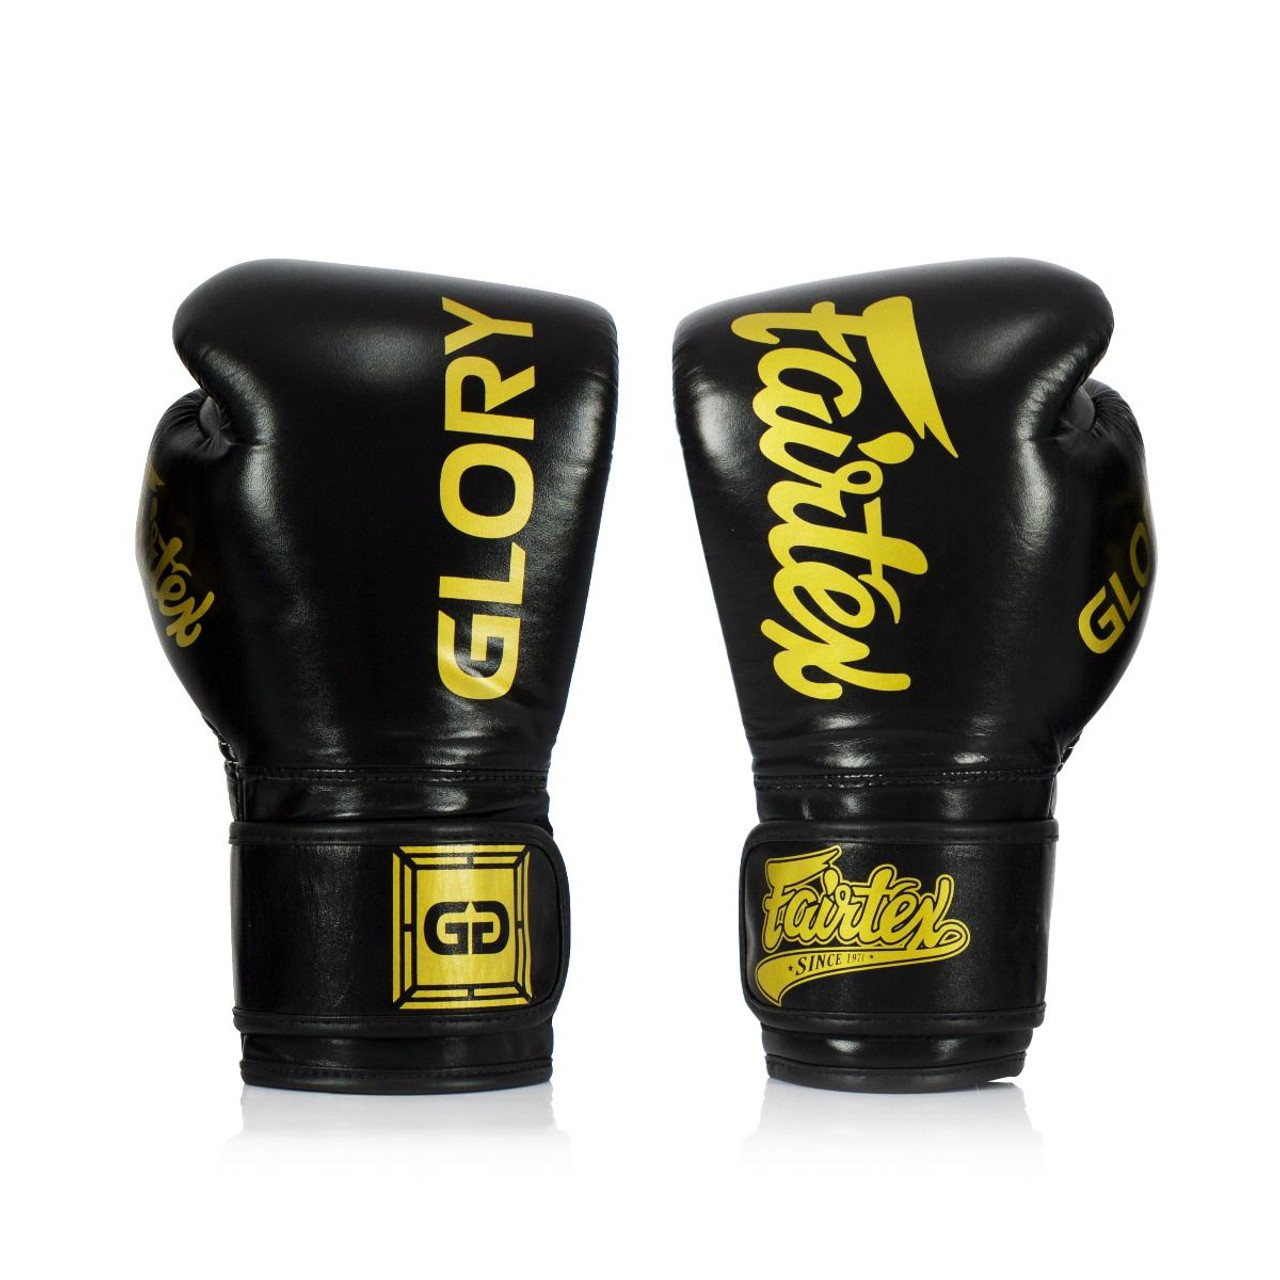 New Fairtex BGL6 Pro Fight Gloves Red White Competition boxing gloves